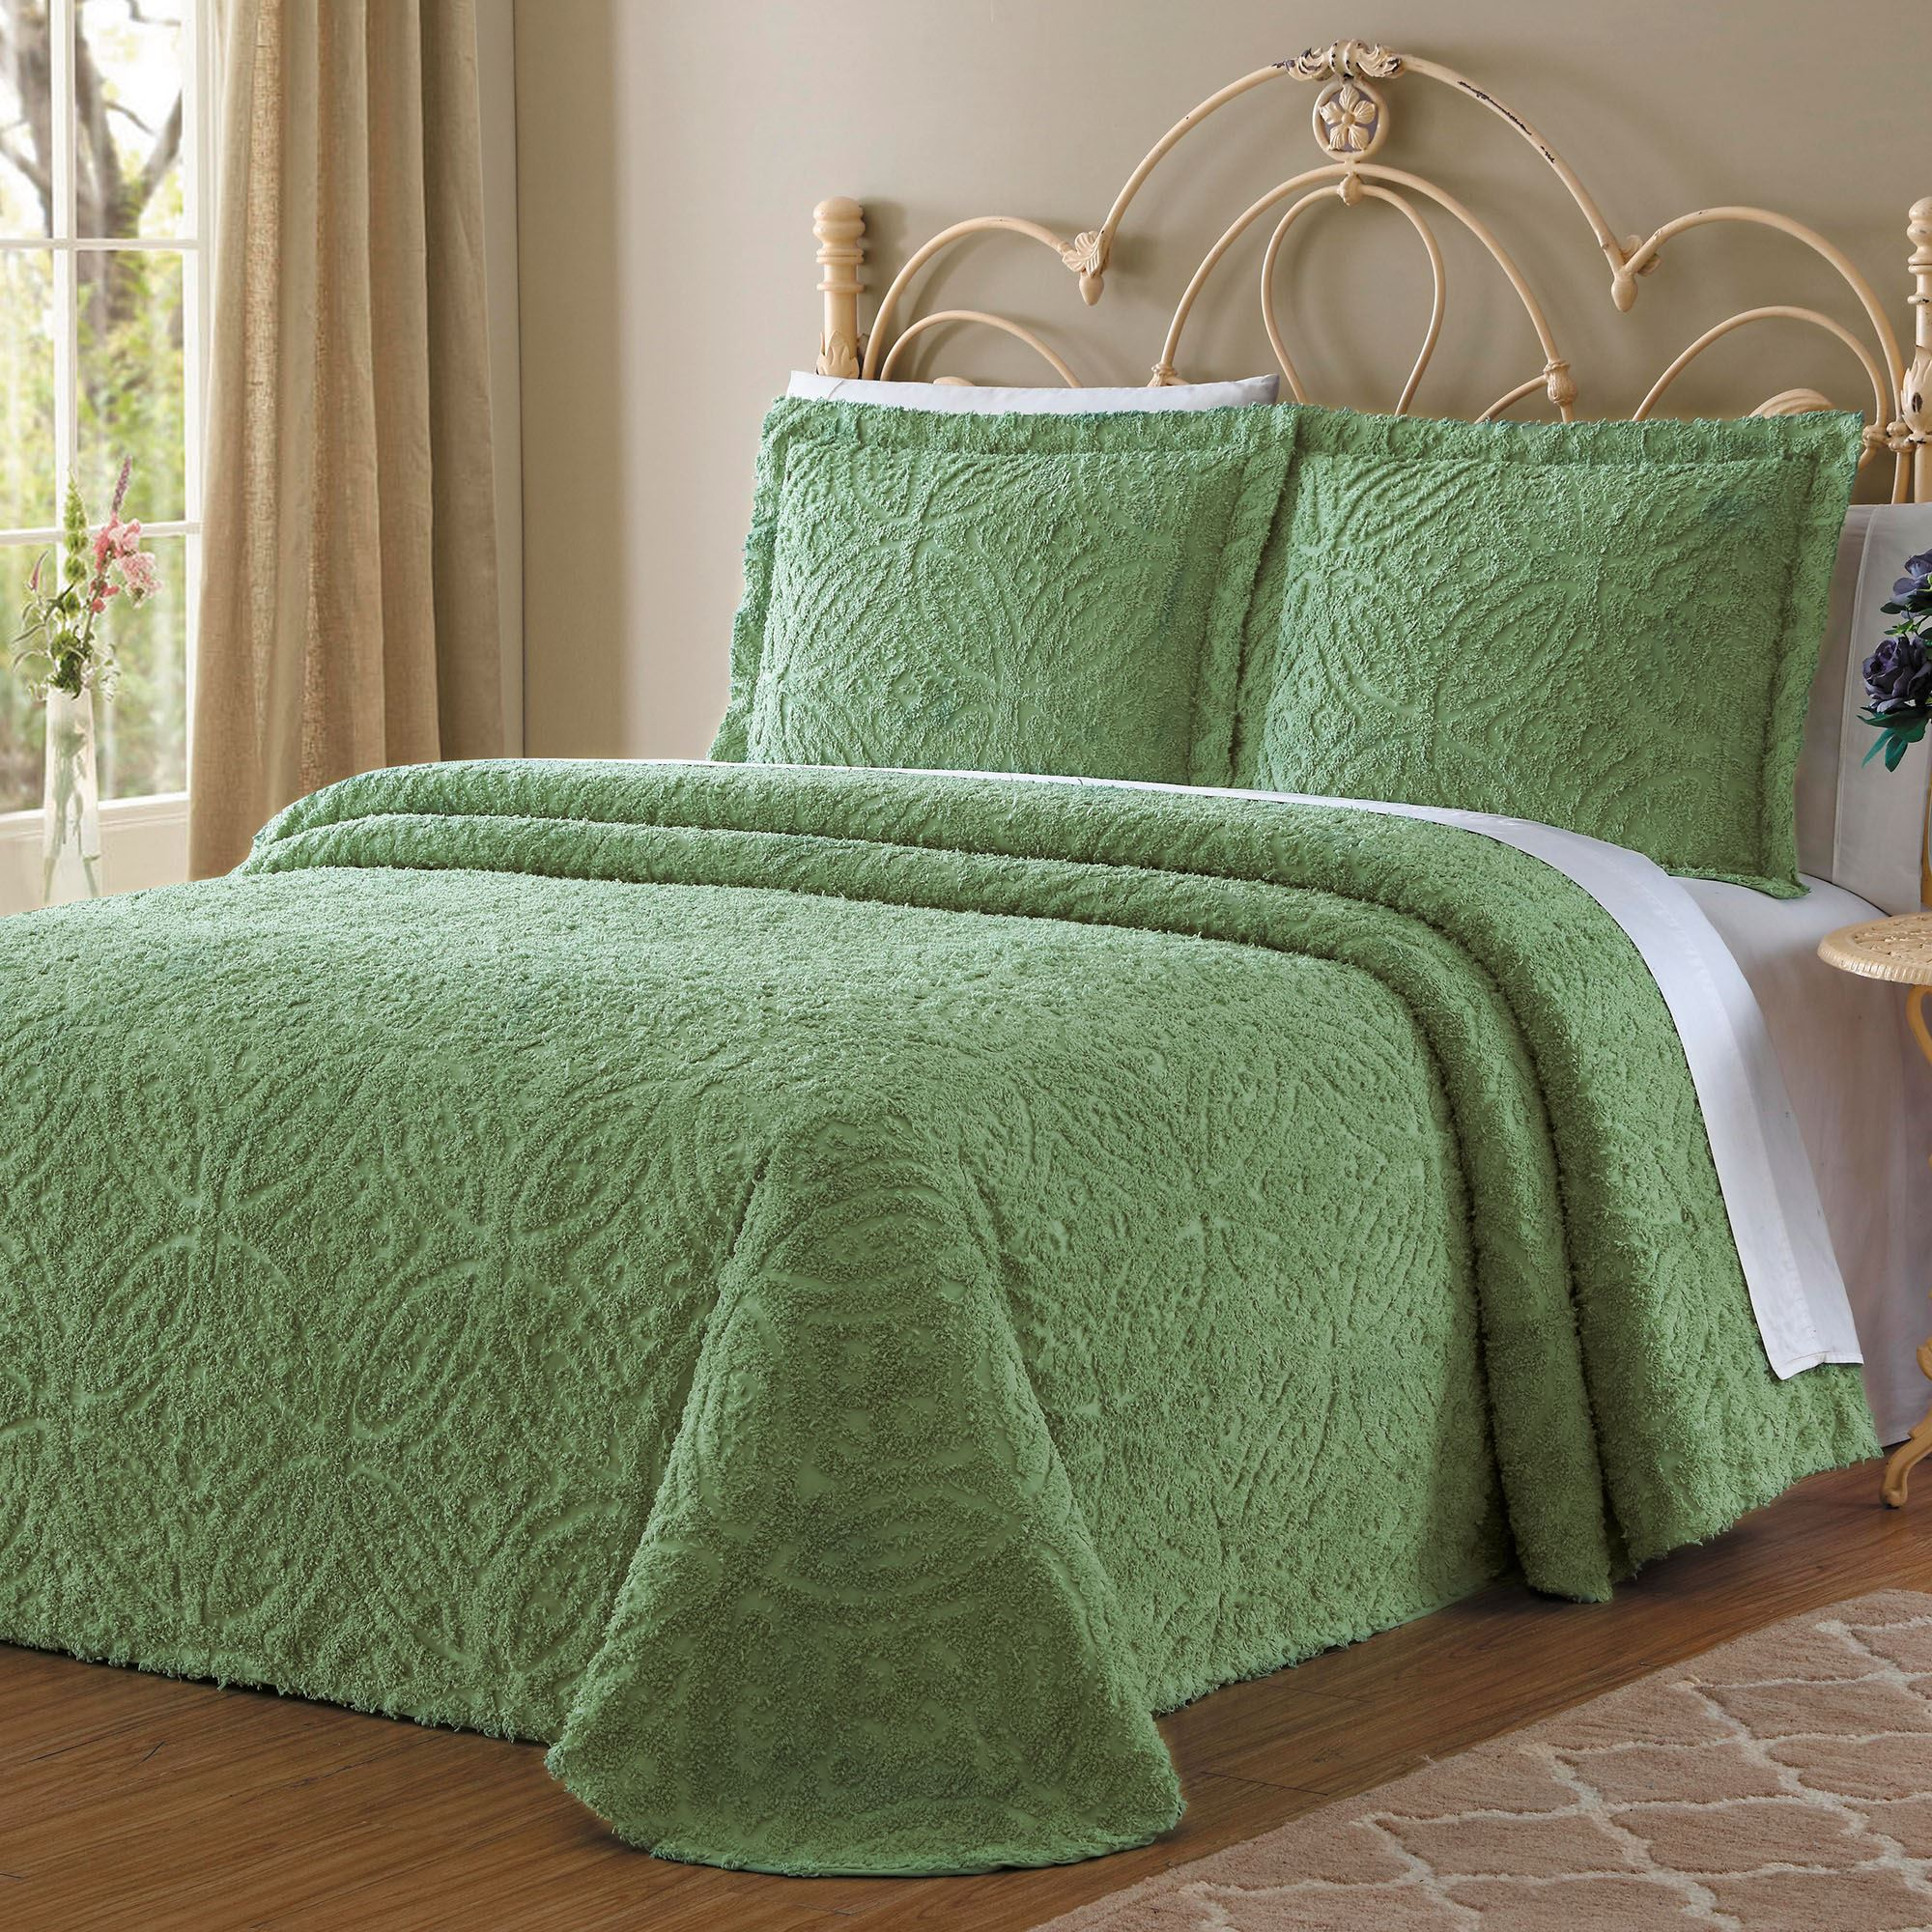 Wedding Ring Light Green Chenille Bedspread Bedding By Lemon E